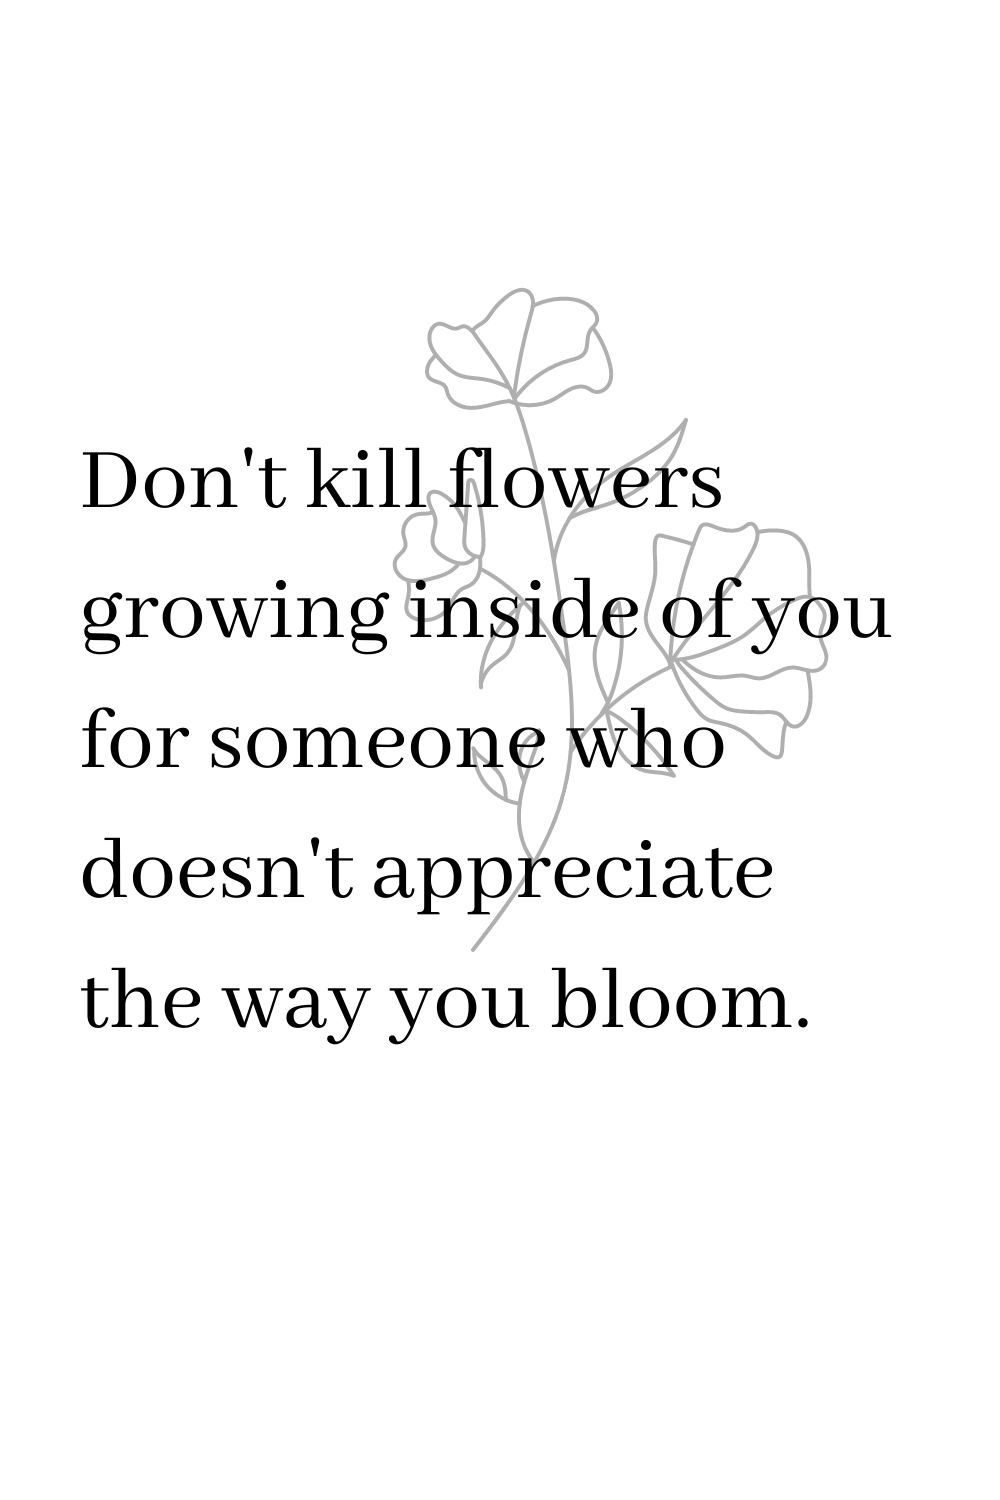 Don't kill flowers growing inside of you for someone who doesn't appreciate the way you bloom.